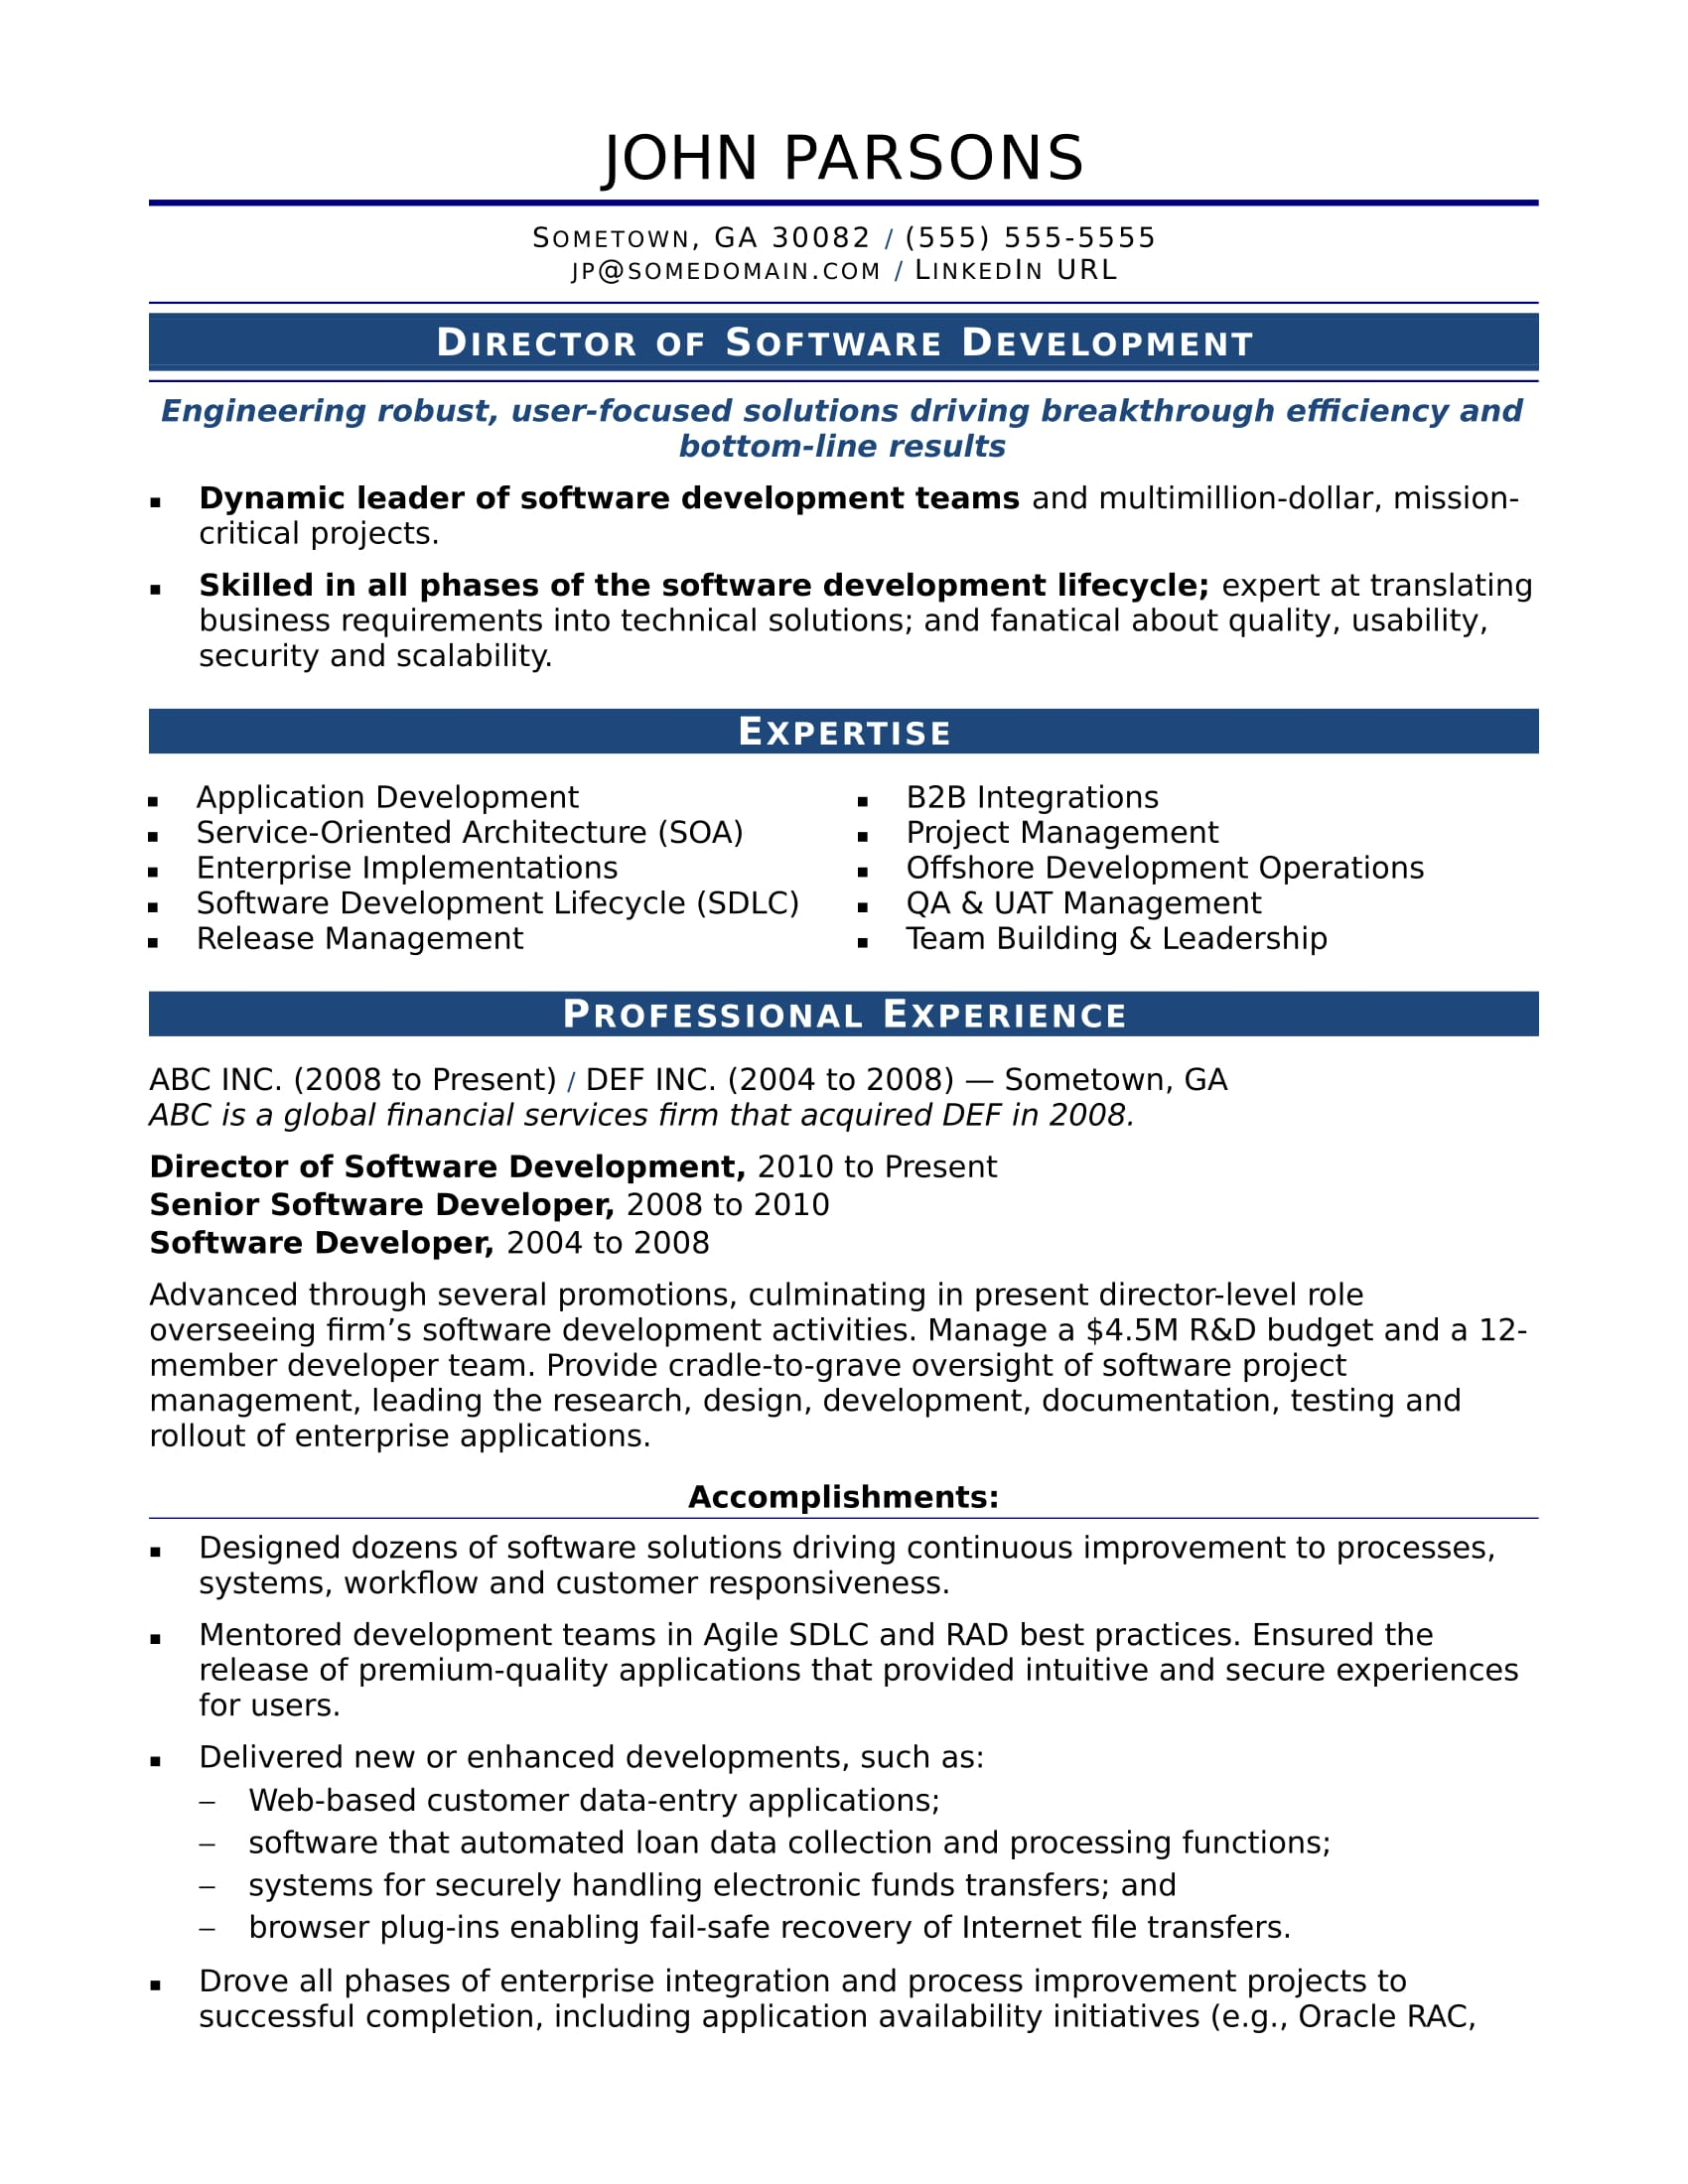 Resume Format Experienced Software Engineer Sample Resume For An Experienced It Developer Monster